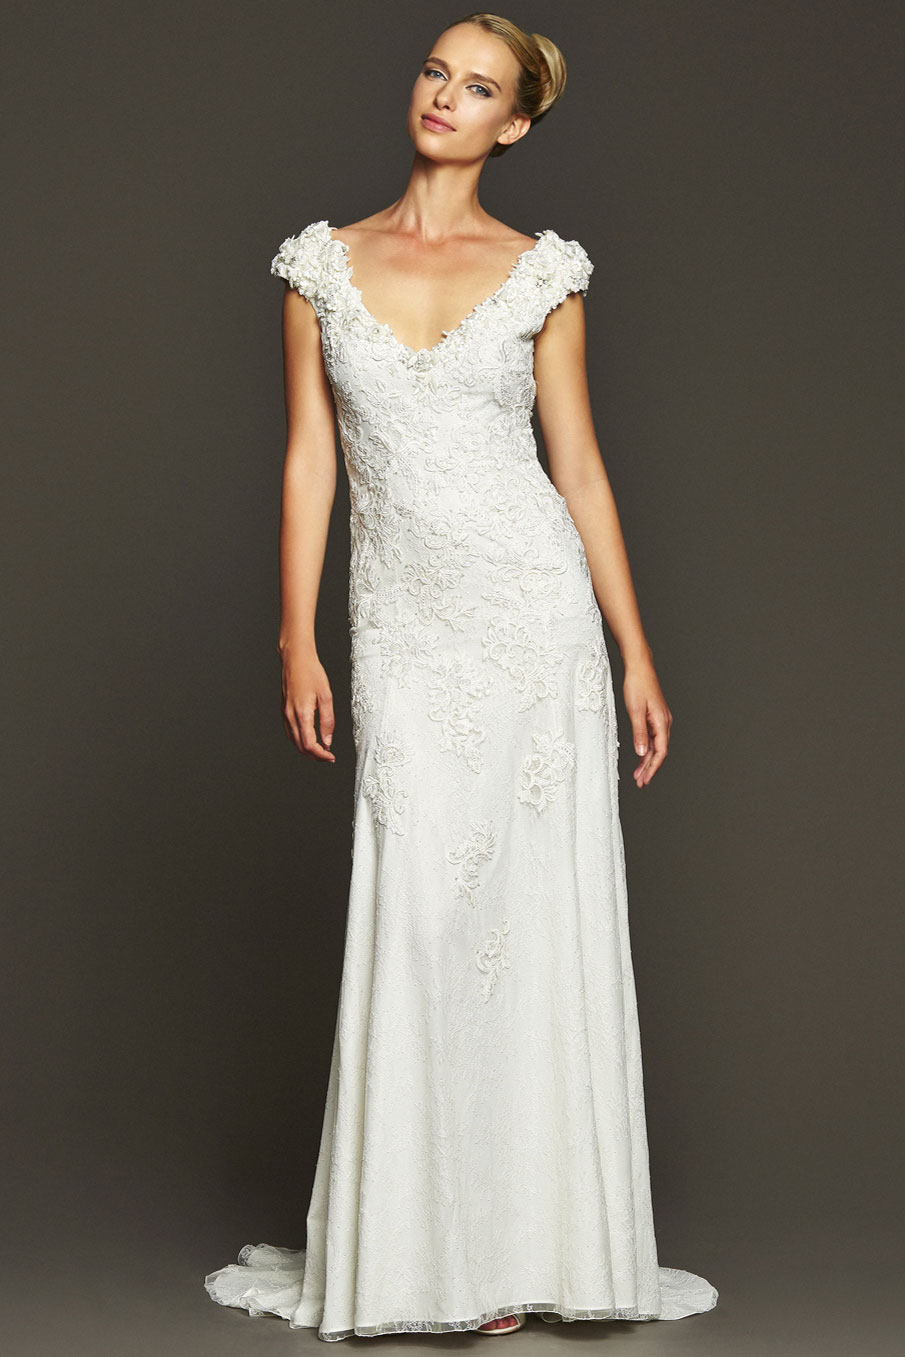 The best contemporary wedding dresses for stylish women | Plus Size ...